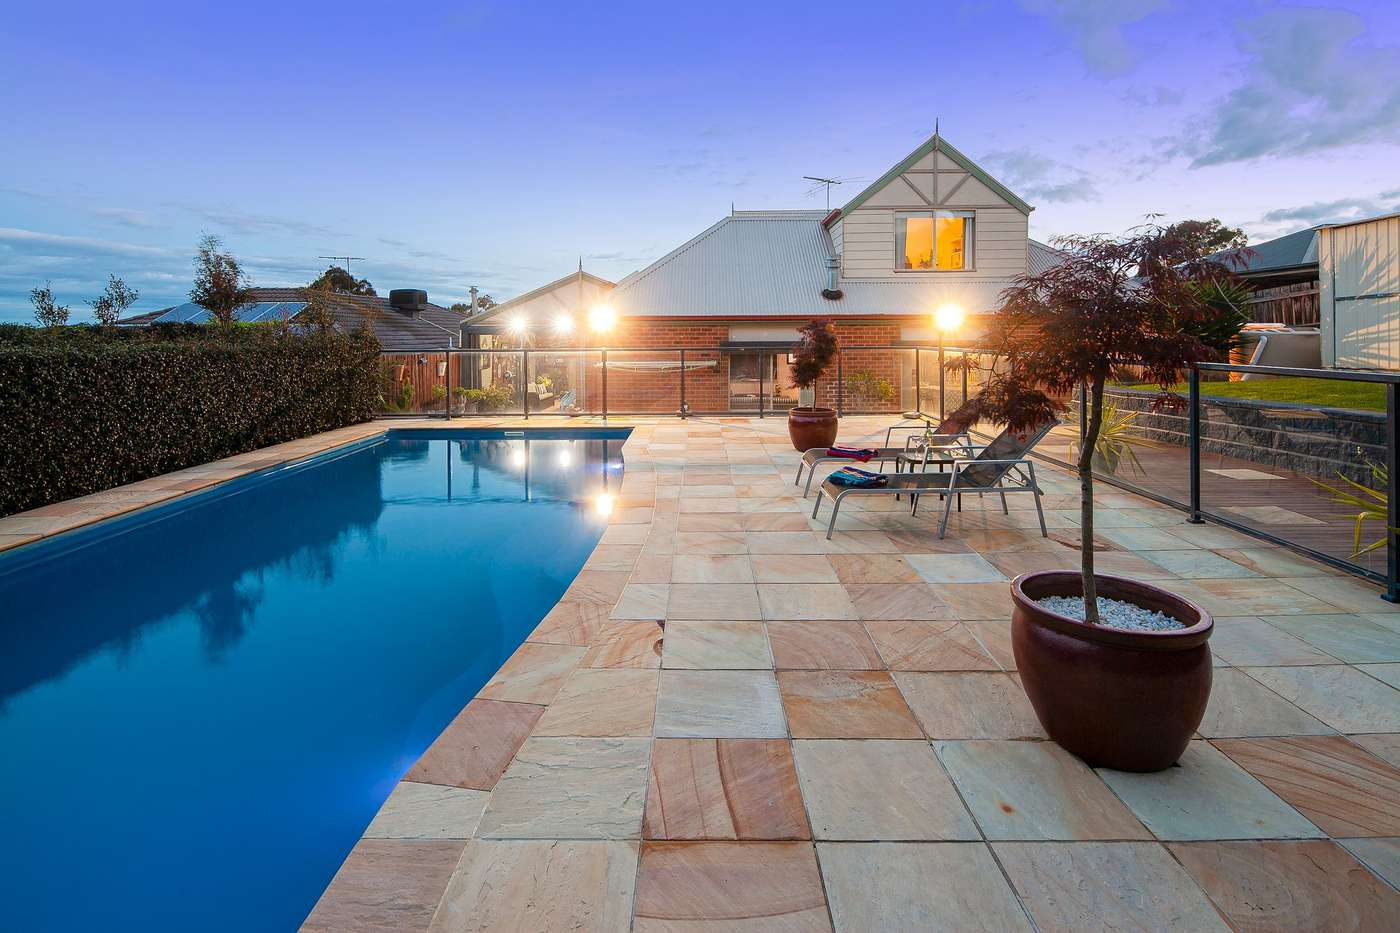 Main view of Homely house listing, 16 Candwindara Court, Langwarrin, VIC 3910